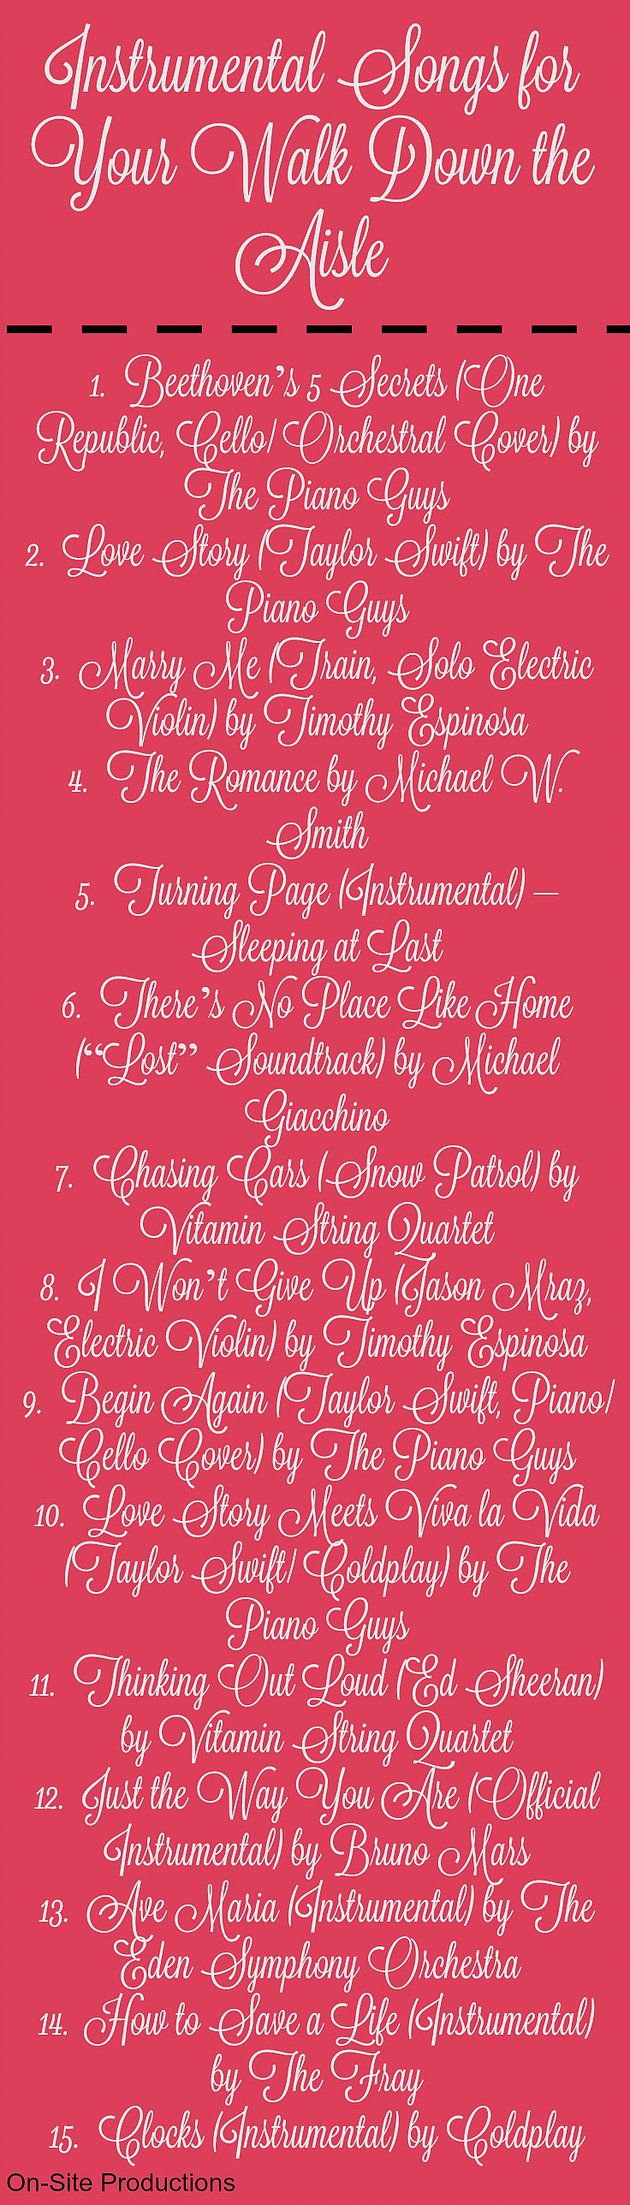 Padua Hills Theatre Weddings 15 INSTRUMENTAL Songs To Play For Your Walk Down The Aisle Oh My These Are Soooo Beautiful